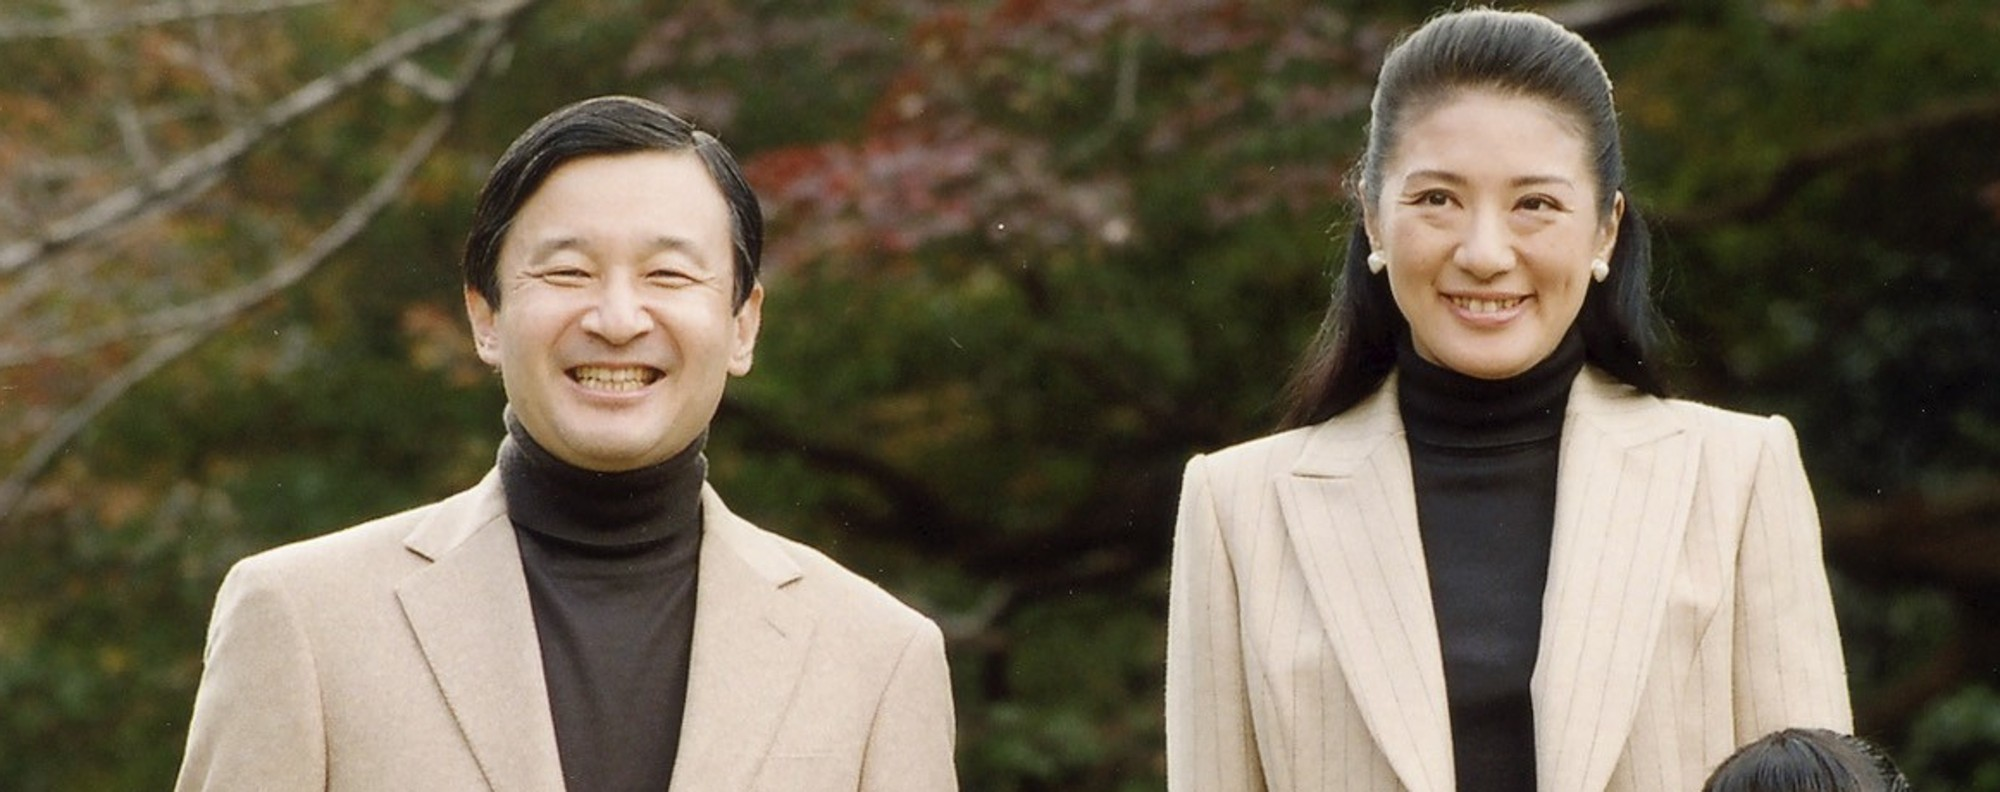 Crown Prince Naruhito and Princess Masako. File photo: Reuters